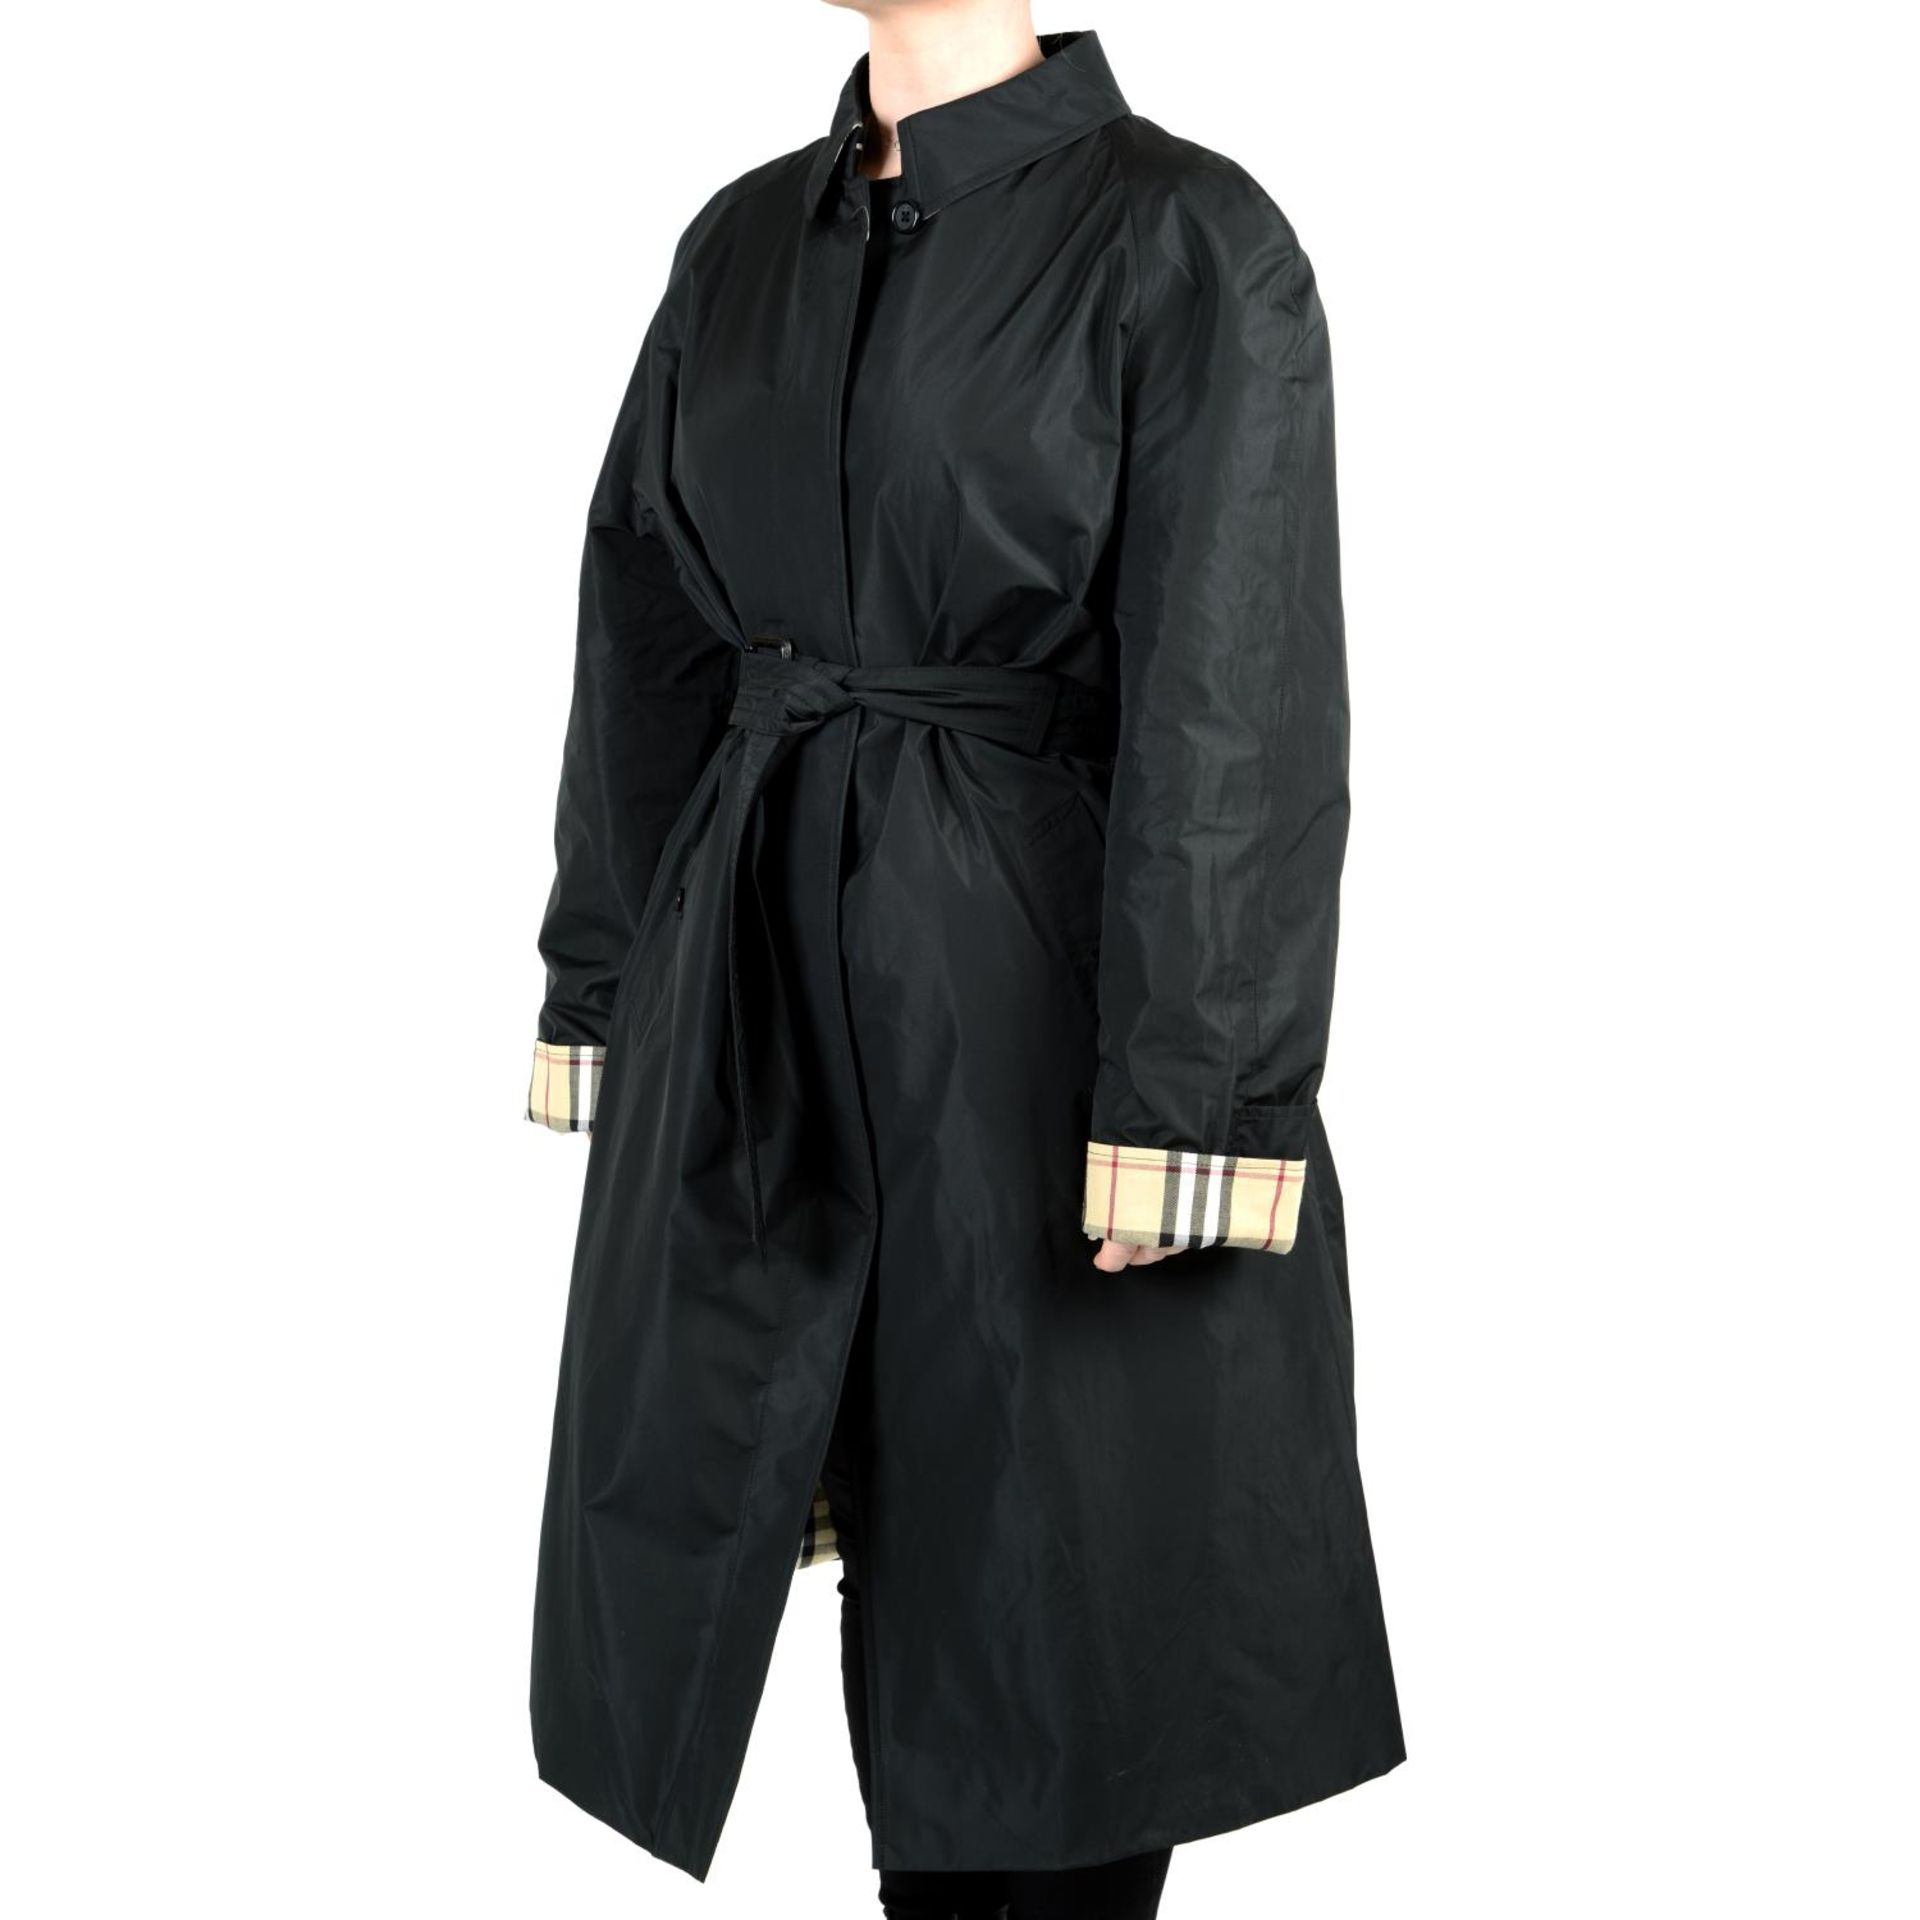 BURBERRY - a black raincoat. - Image 3 of 4